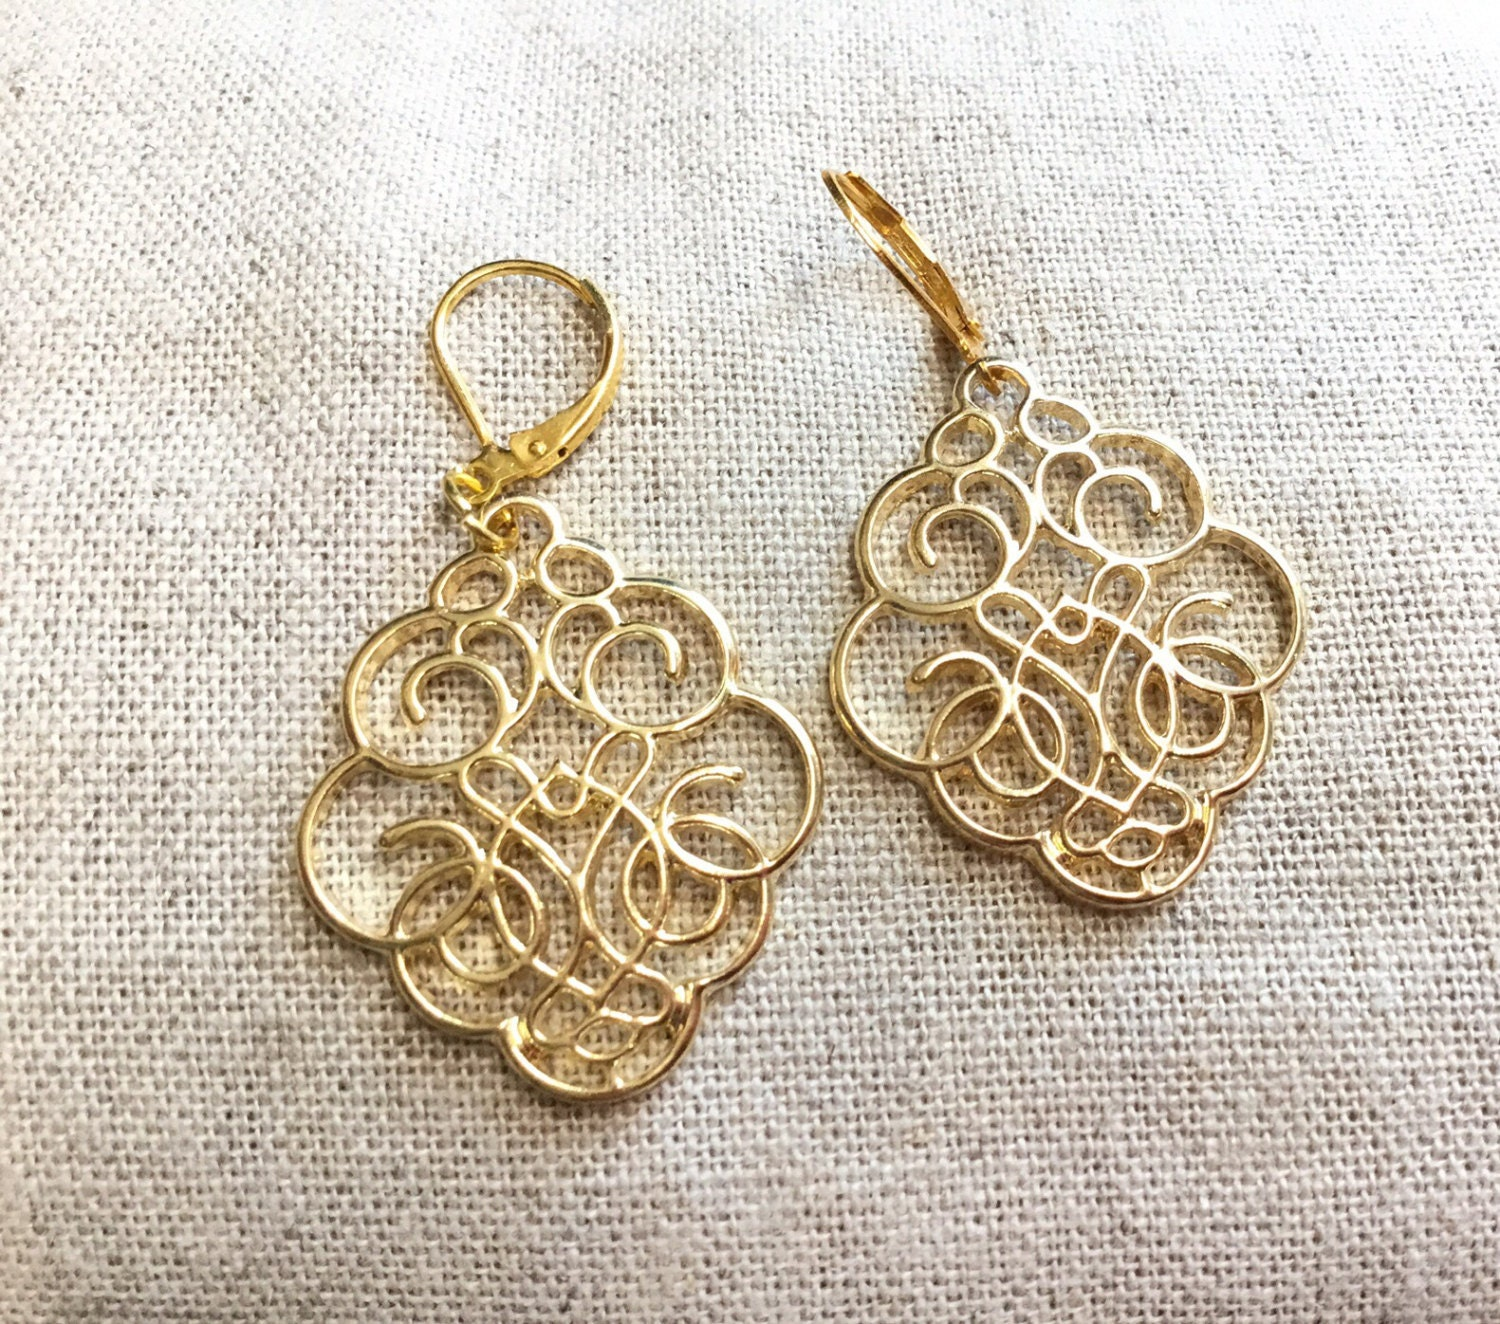 jewelry kendra addie filigree lg categories earrings in drop gold default scott